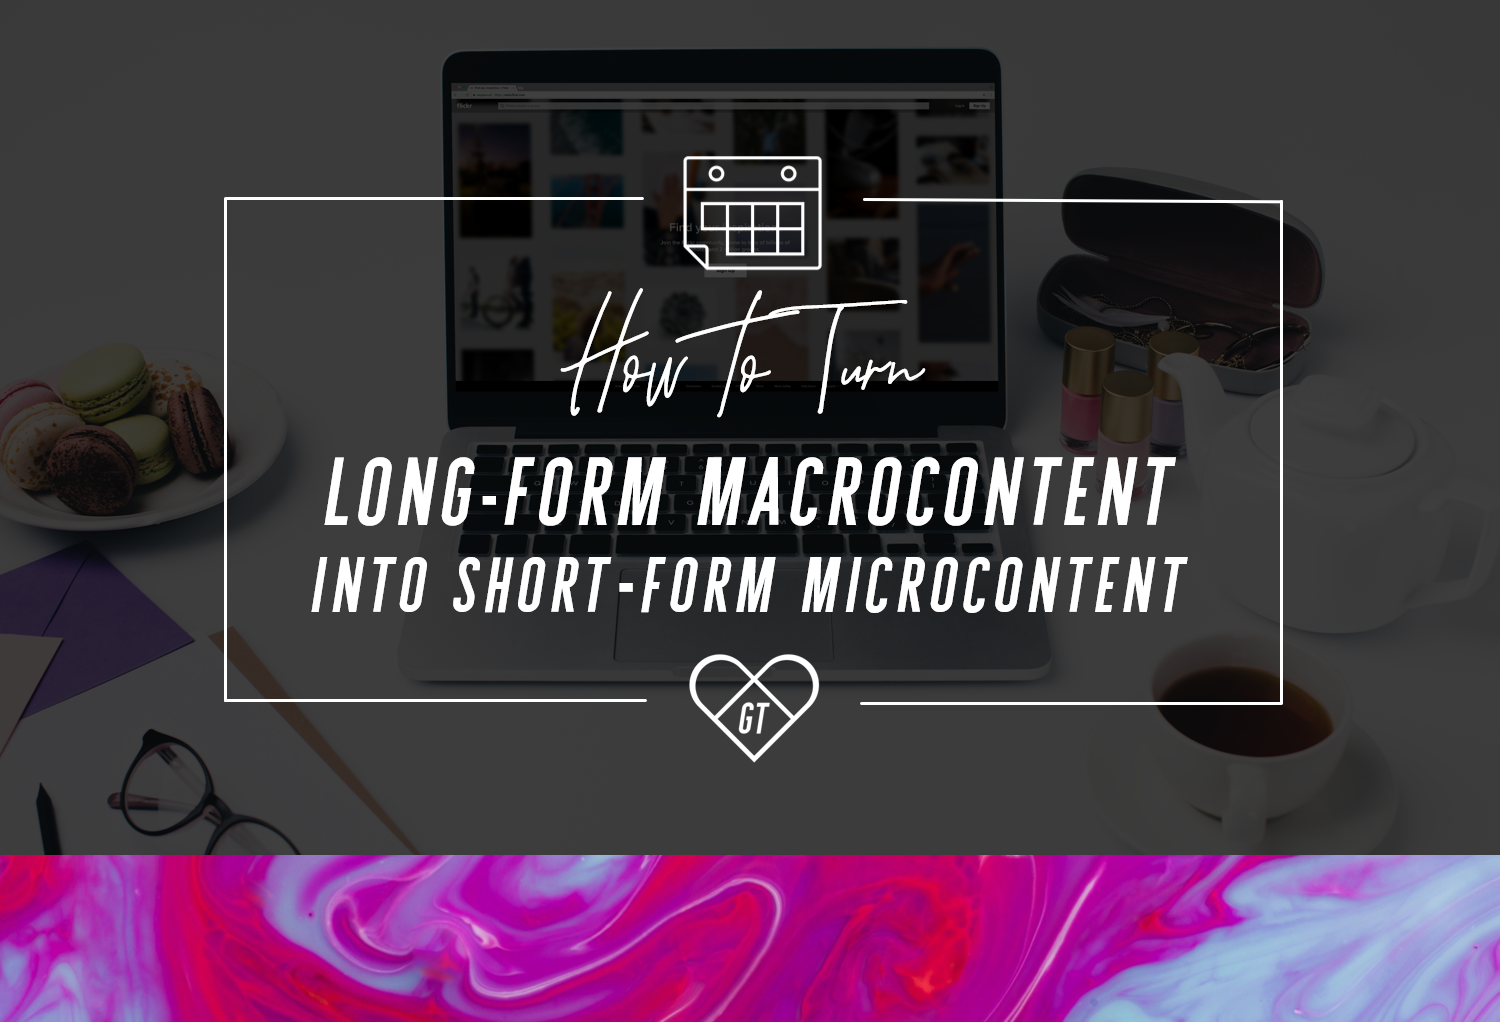 Microcontent_Macrocontent_Content_Marketing_Repurposing_Georgina_Taylor.png